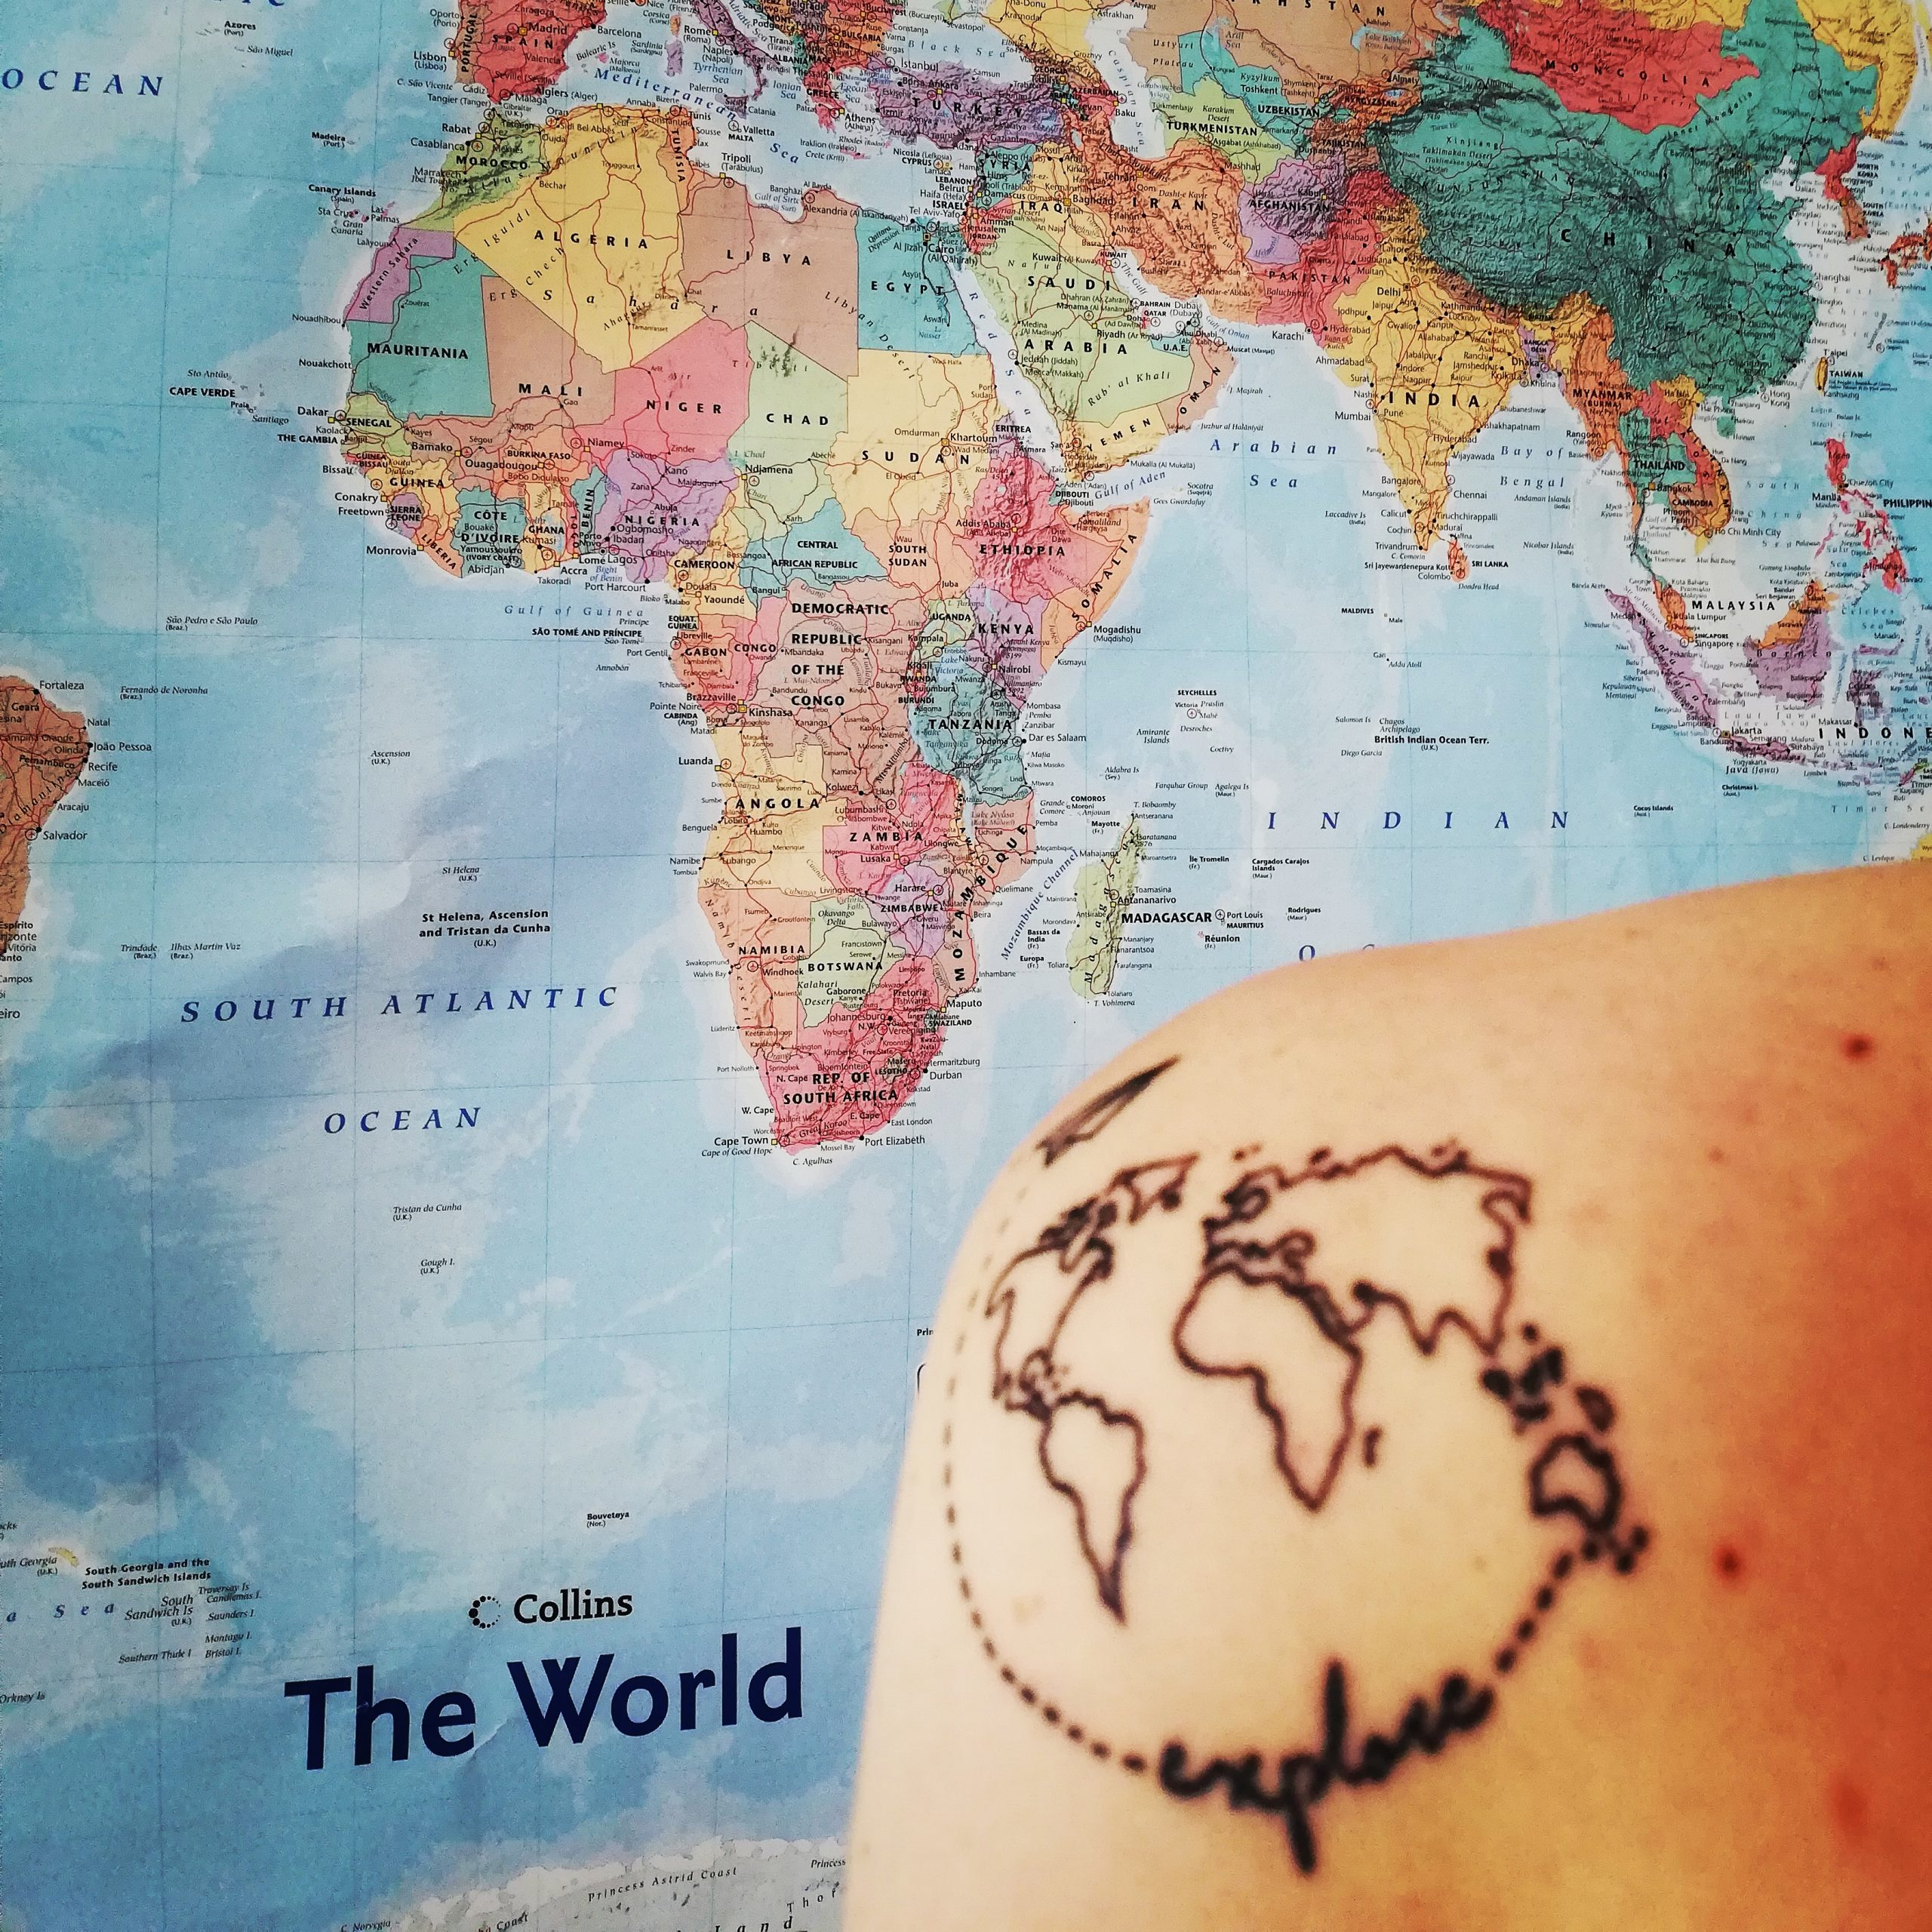 Departures Only logo depicting a tattoed shoulder in the foreground and a coloured world map in the background